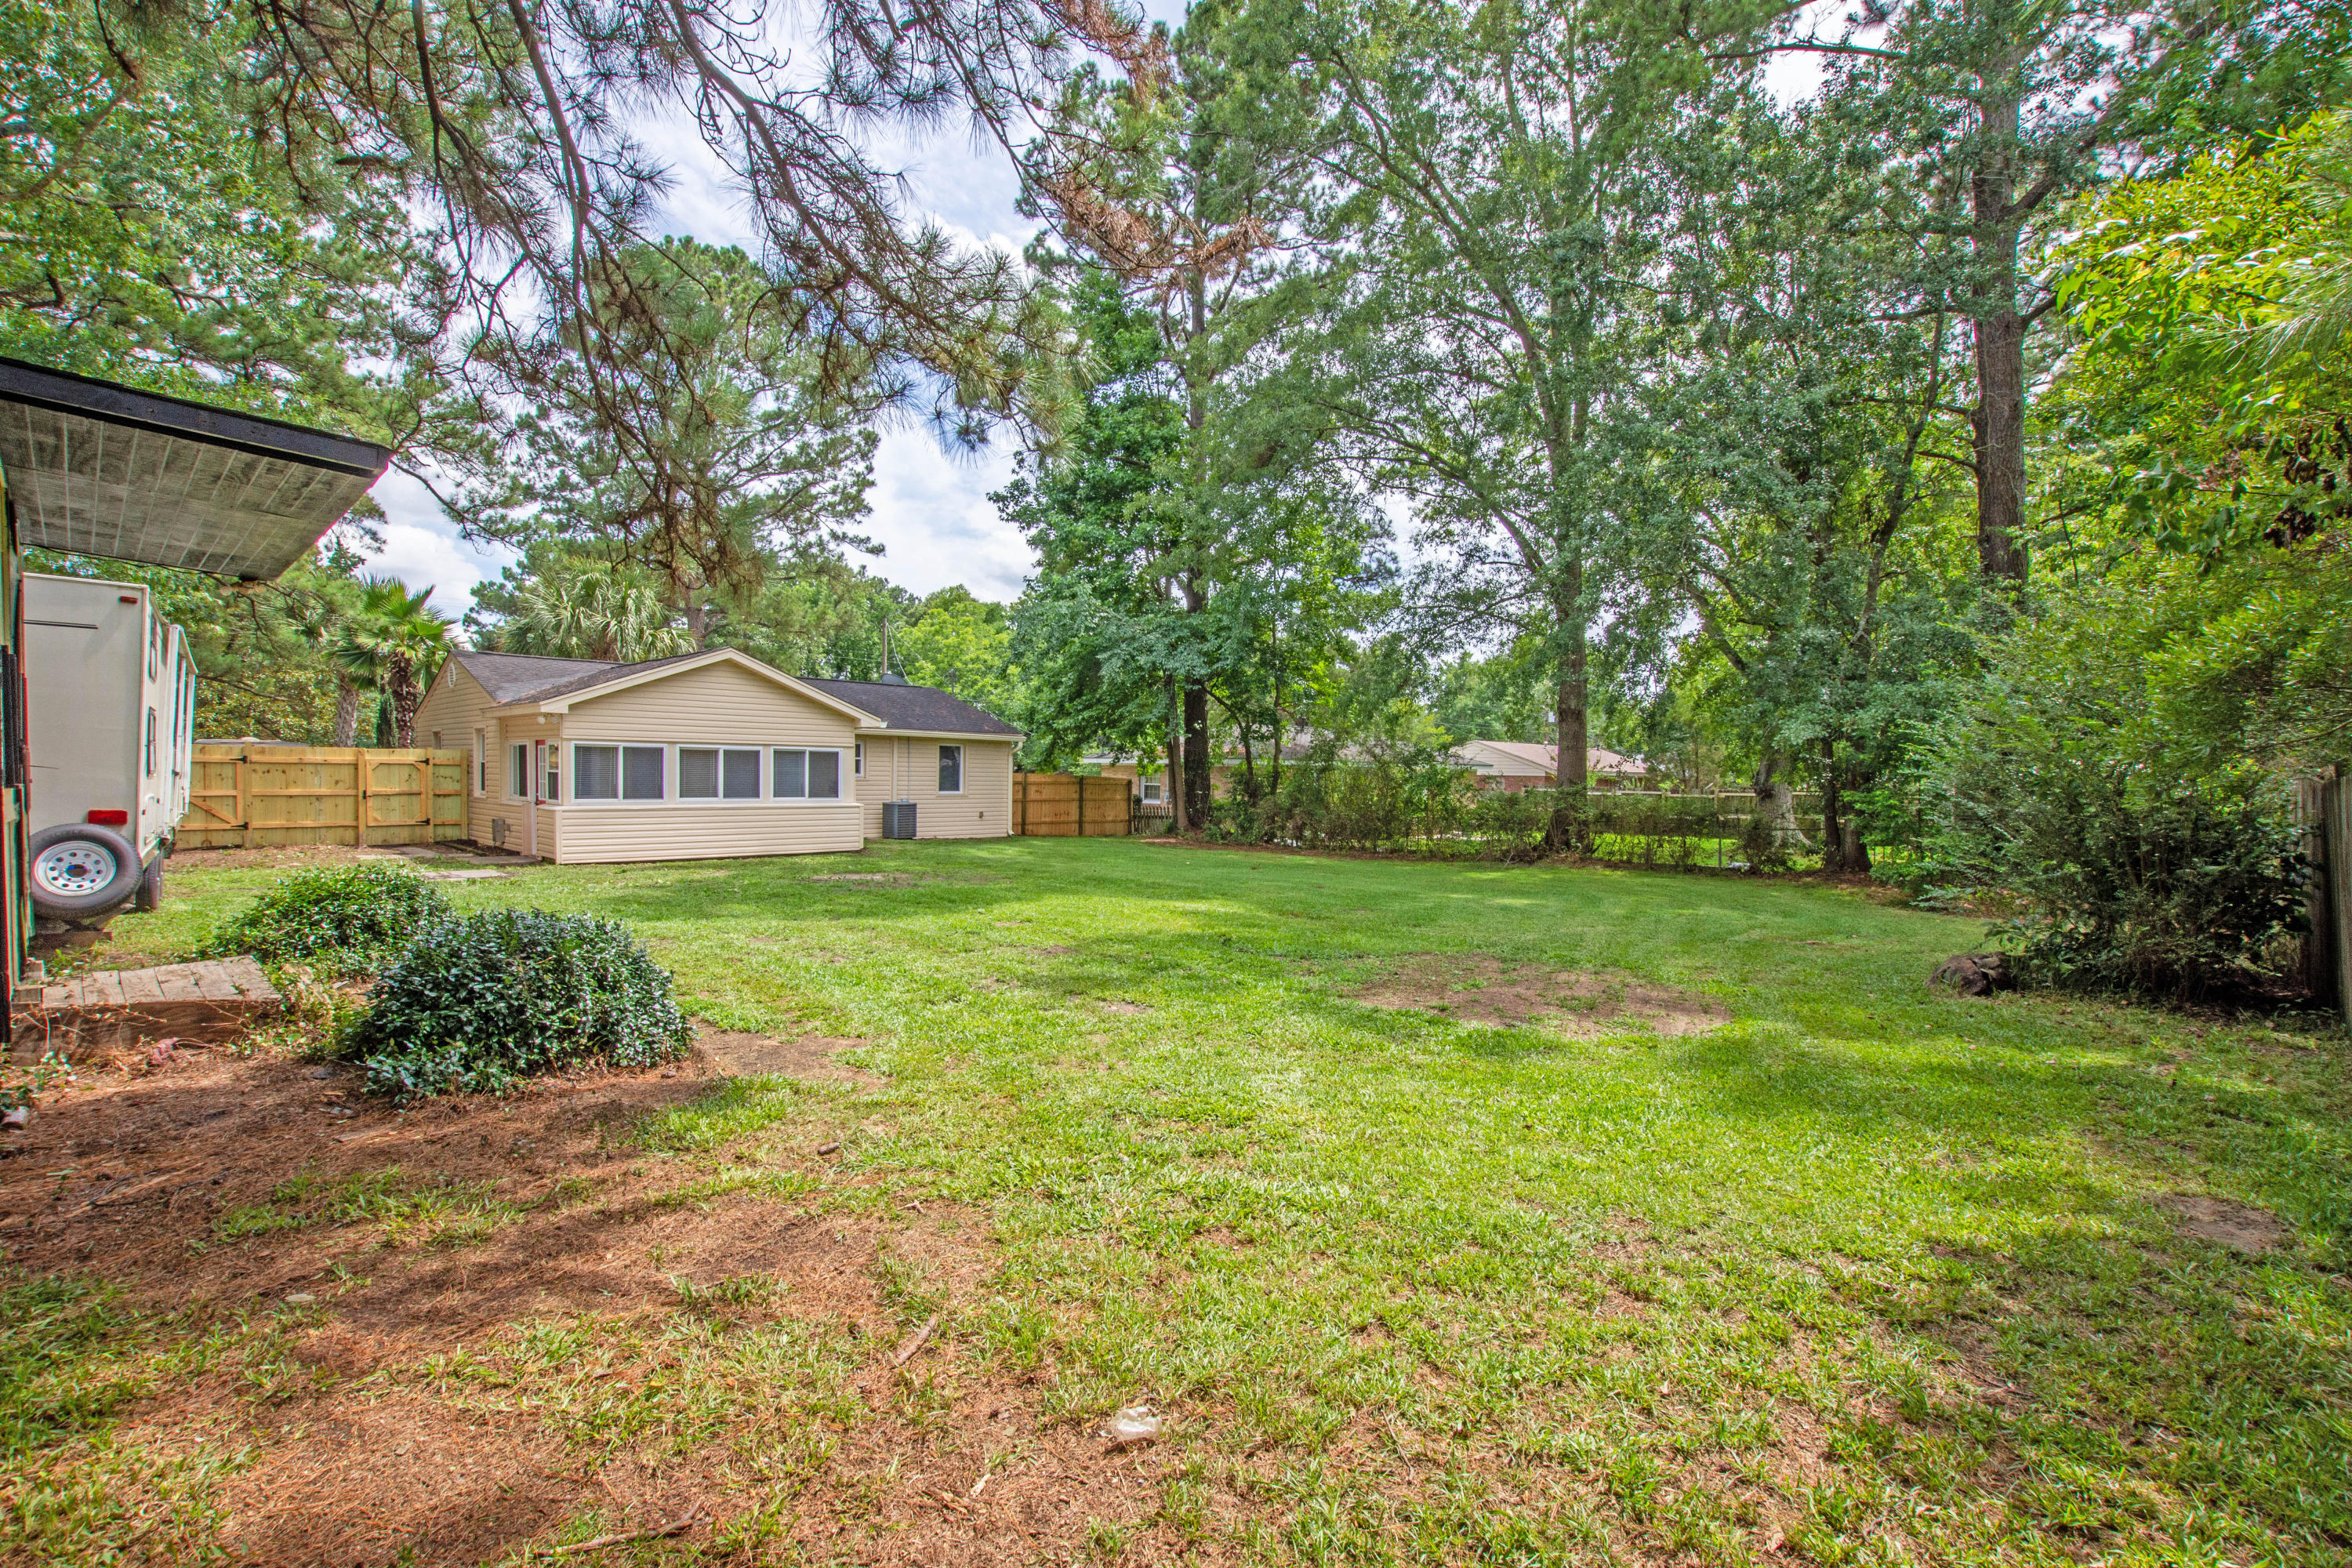 Pineview Terrace Homes For Sale - 232 Holly, Goose Creek, SC - 2